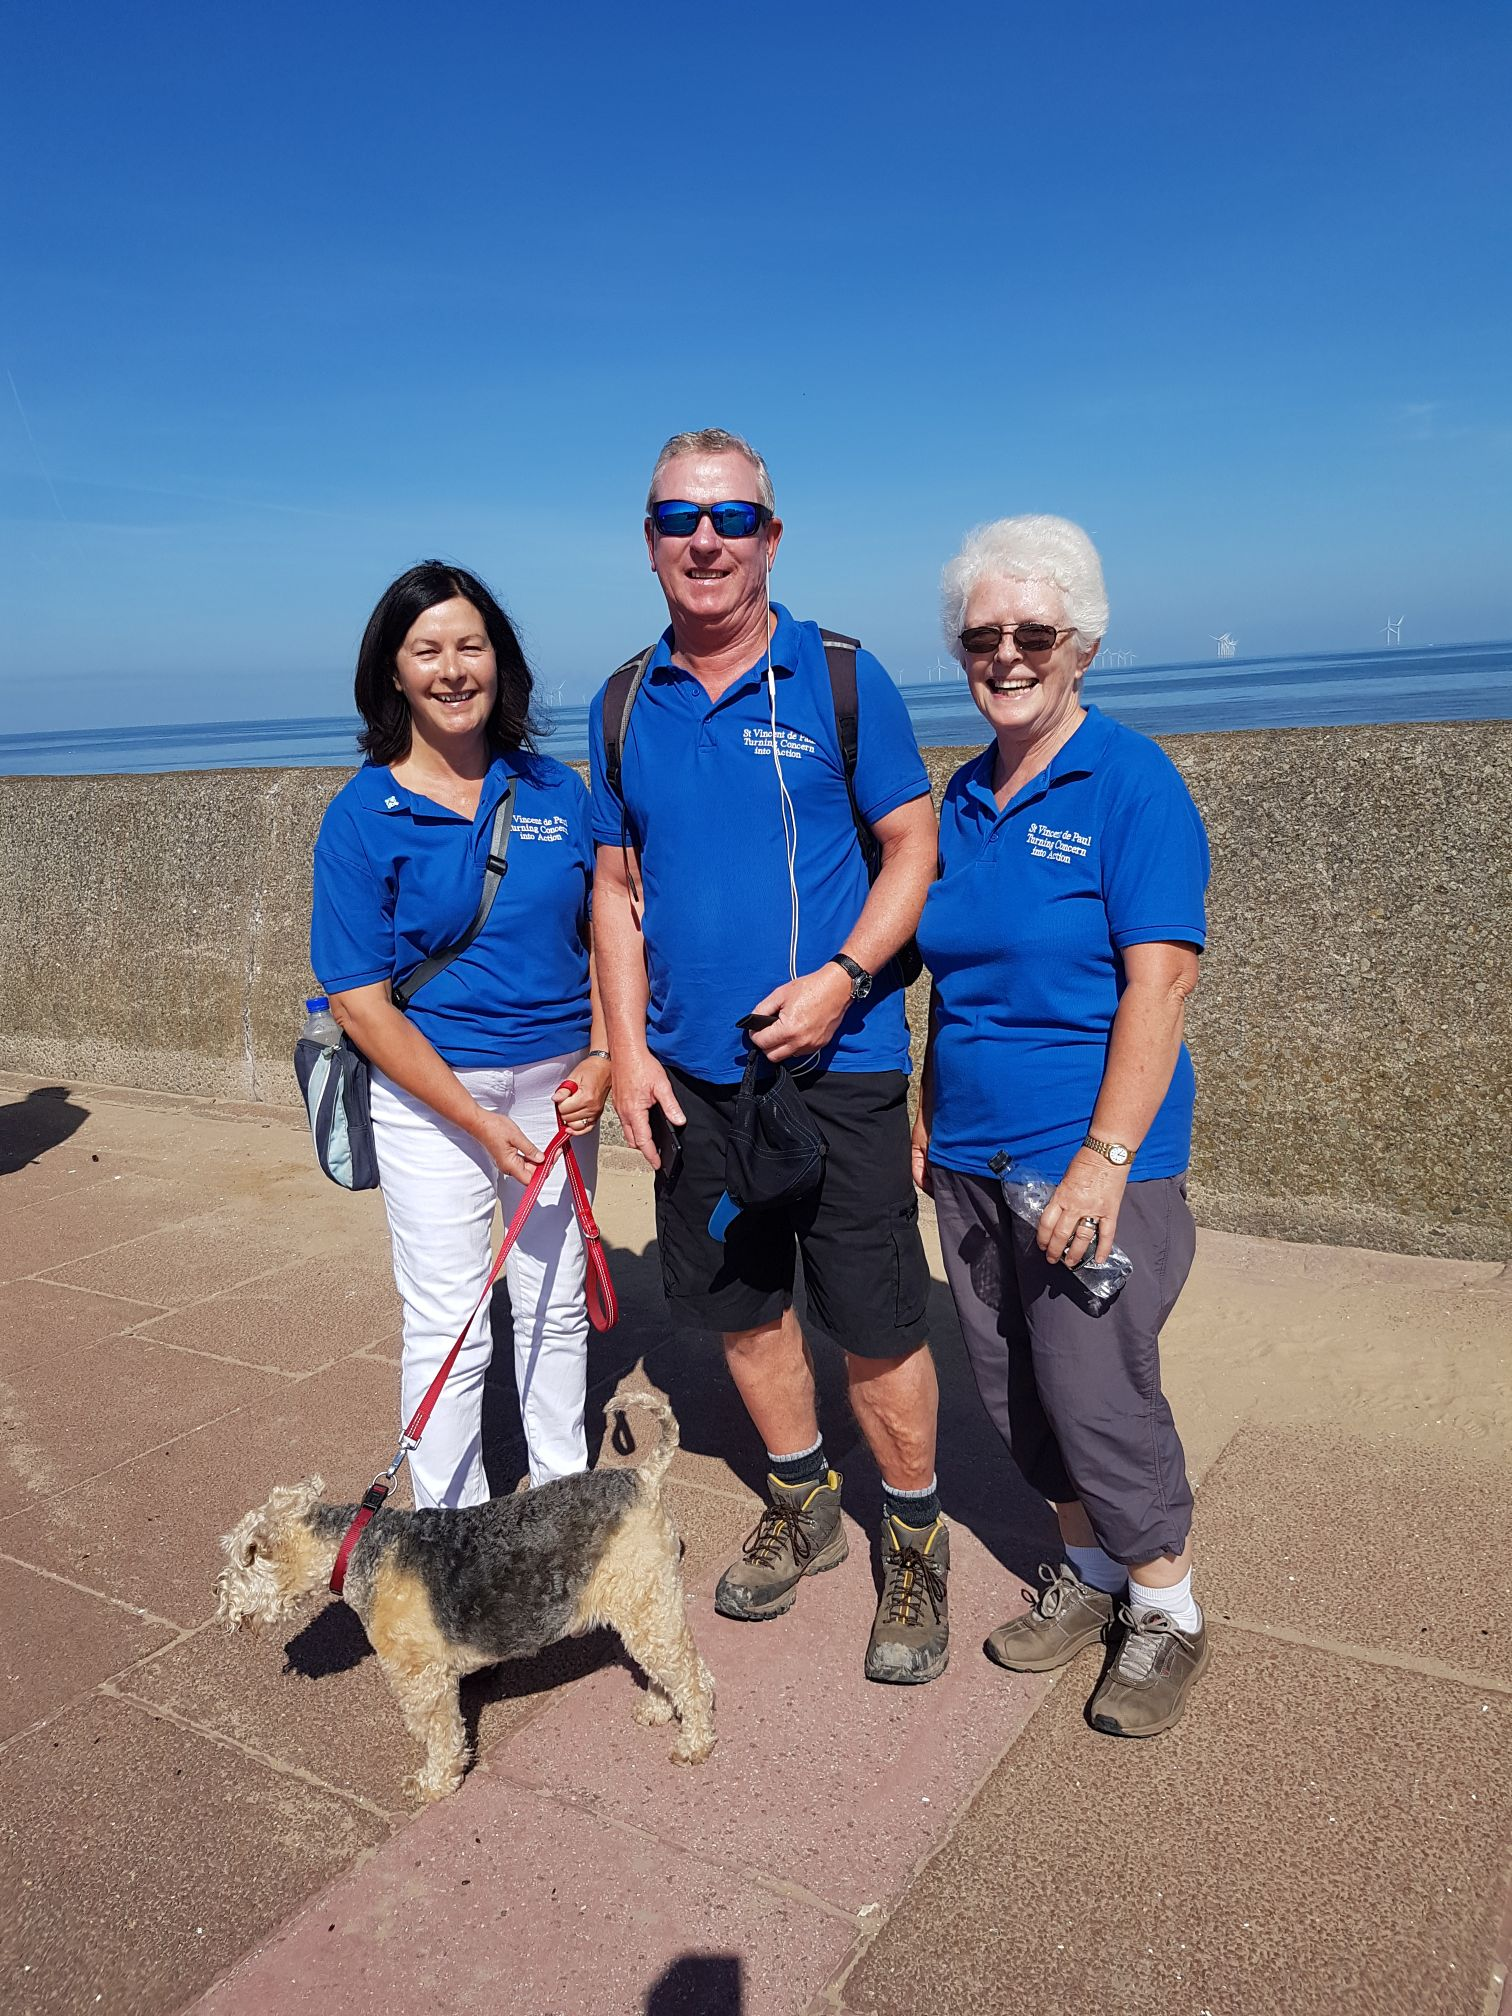 Enjoying the Wirral Coastal Walk to raise money for Summer Camps